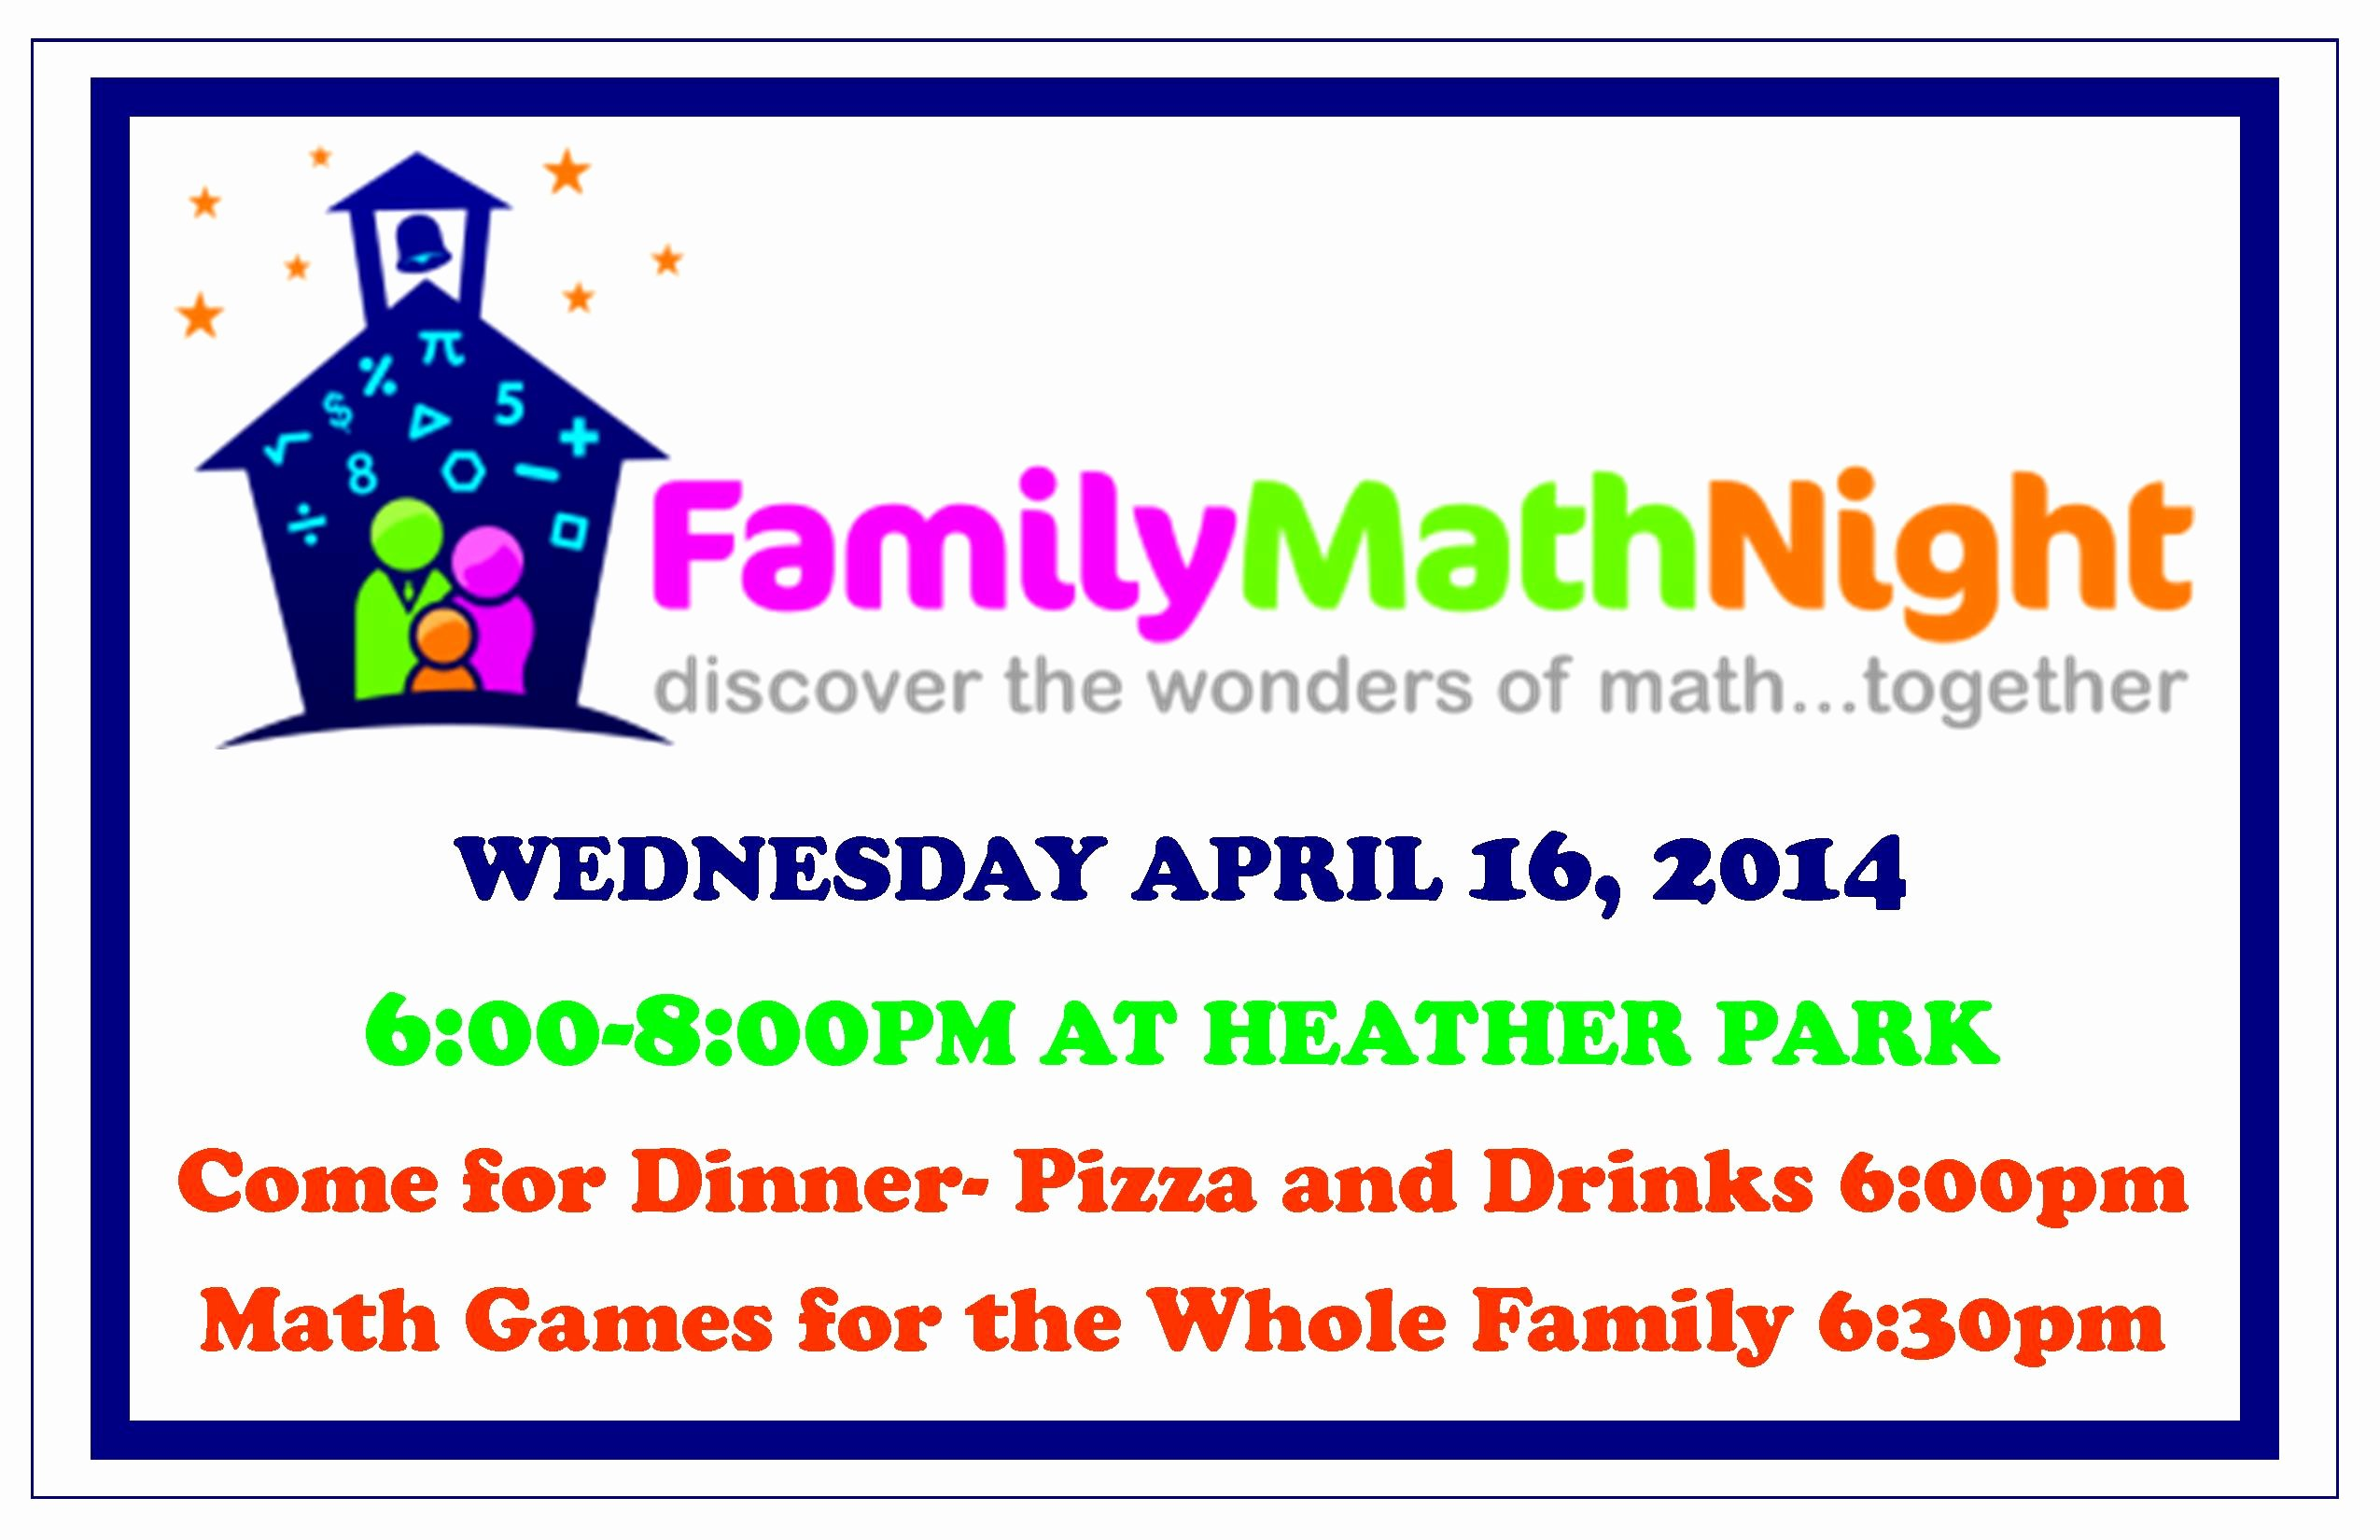 Parents Night Out Flyer Template Lovely Family Math Night at Heather Park School Wednesday April